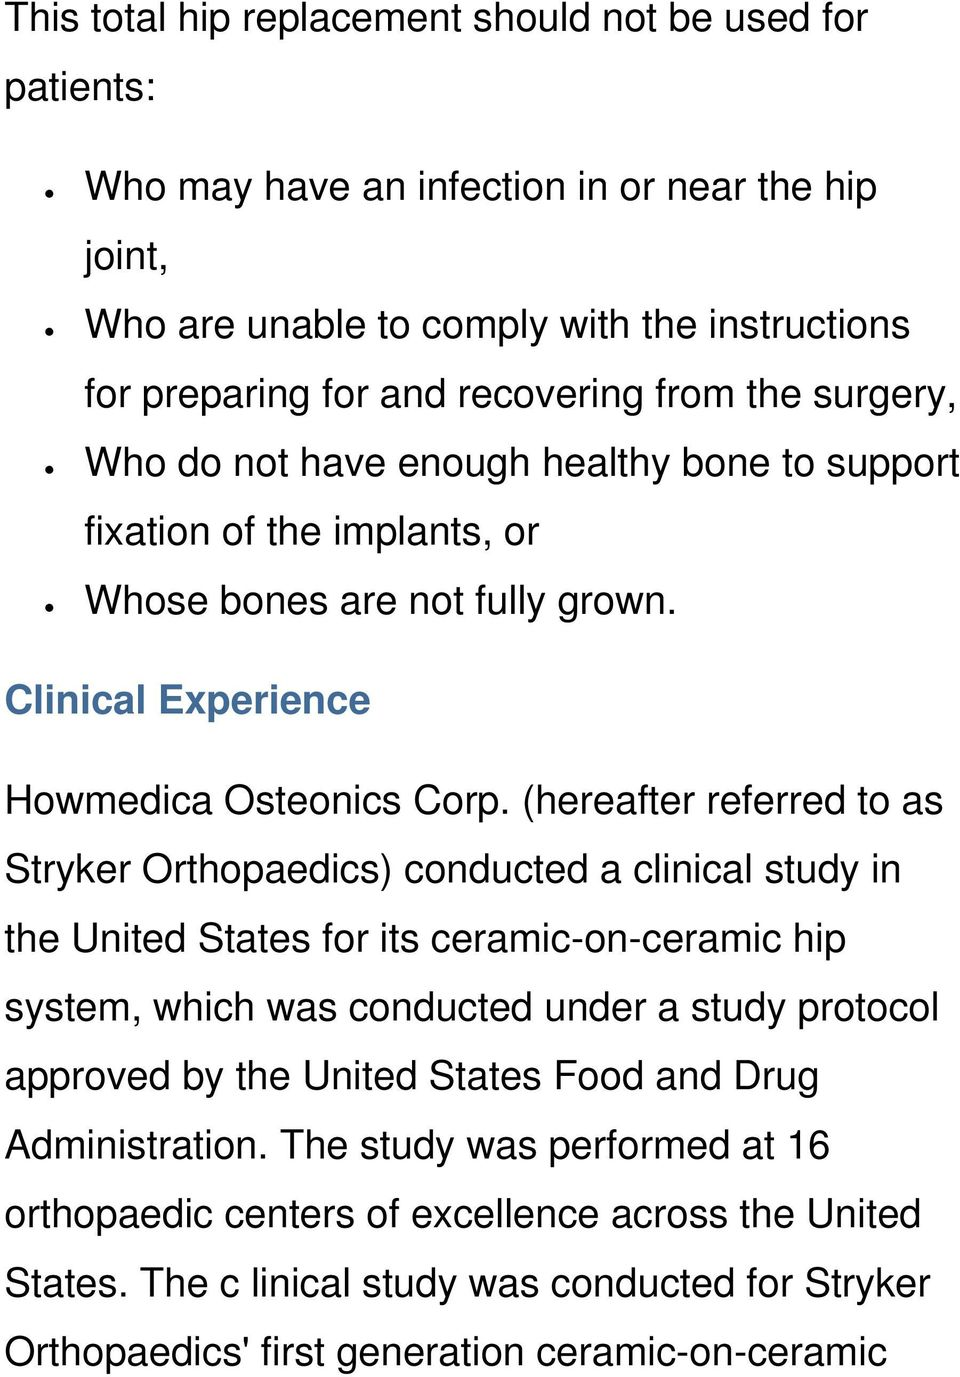 (hereafter referred to as Stryker Orthopaedics) conducted a clinical study in the United States for its ceramic-on-ceramic hip system, which was conducted under a study protocol approved by the